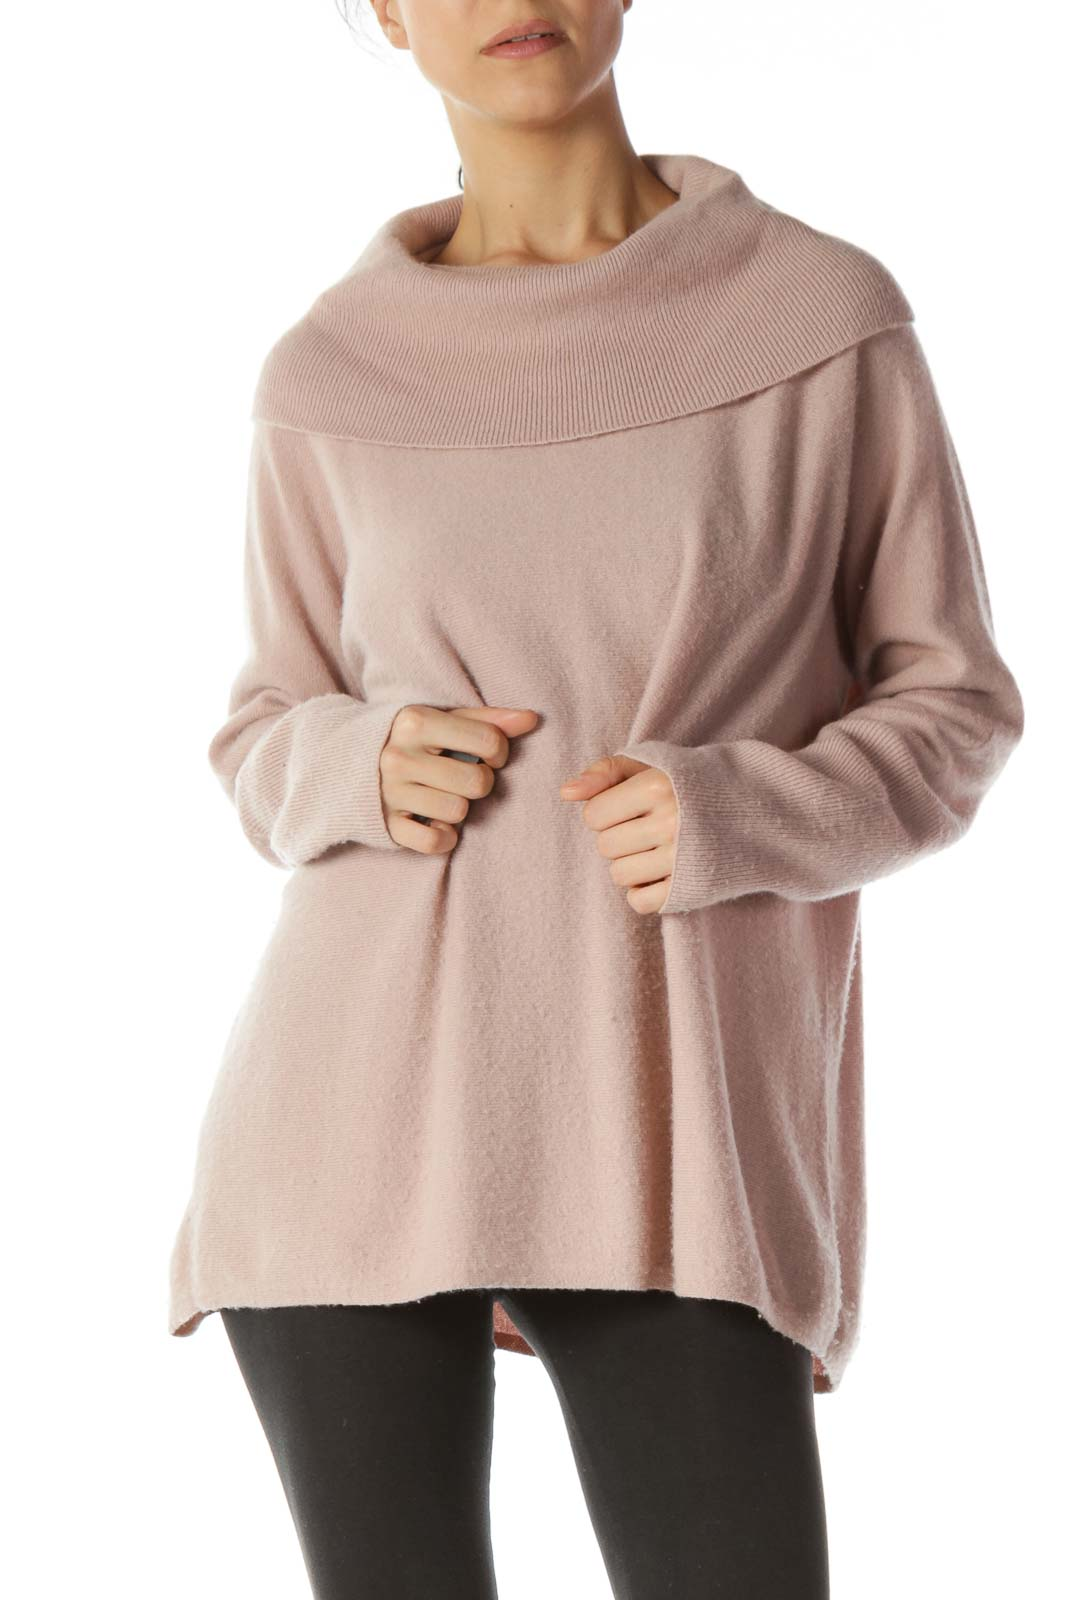 Pastel Pink 100% Cashmere Cowl Turtleneck Sweater